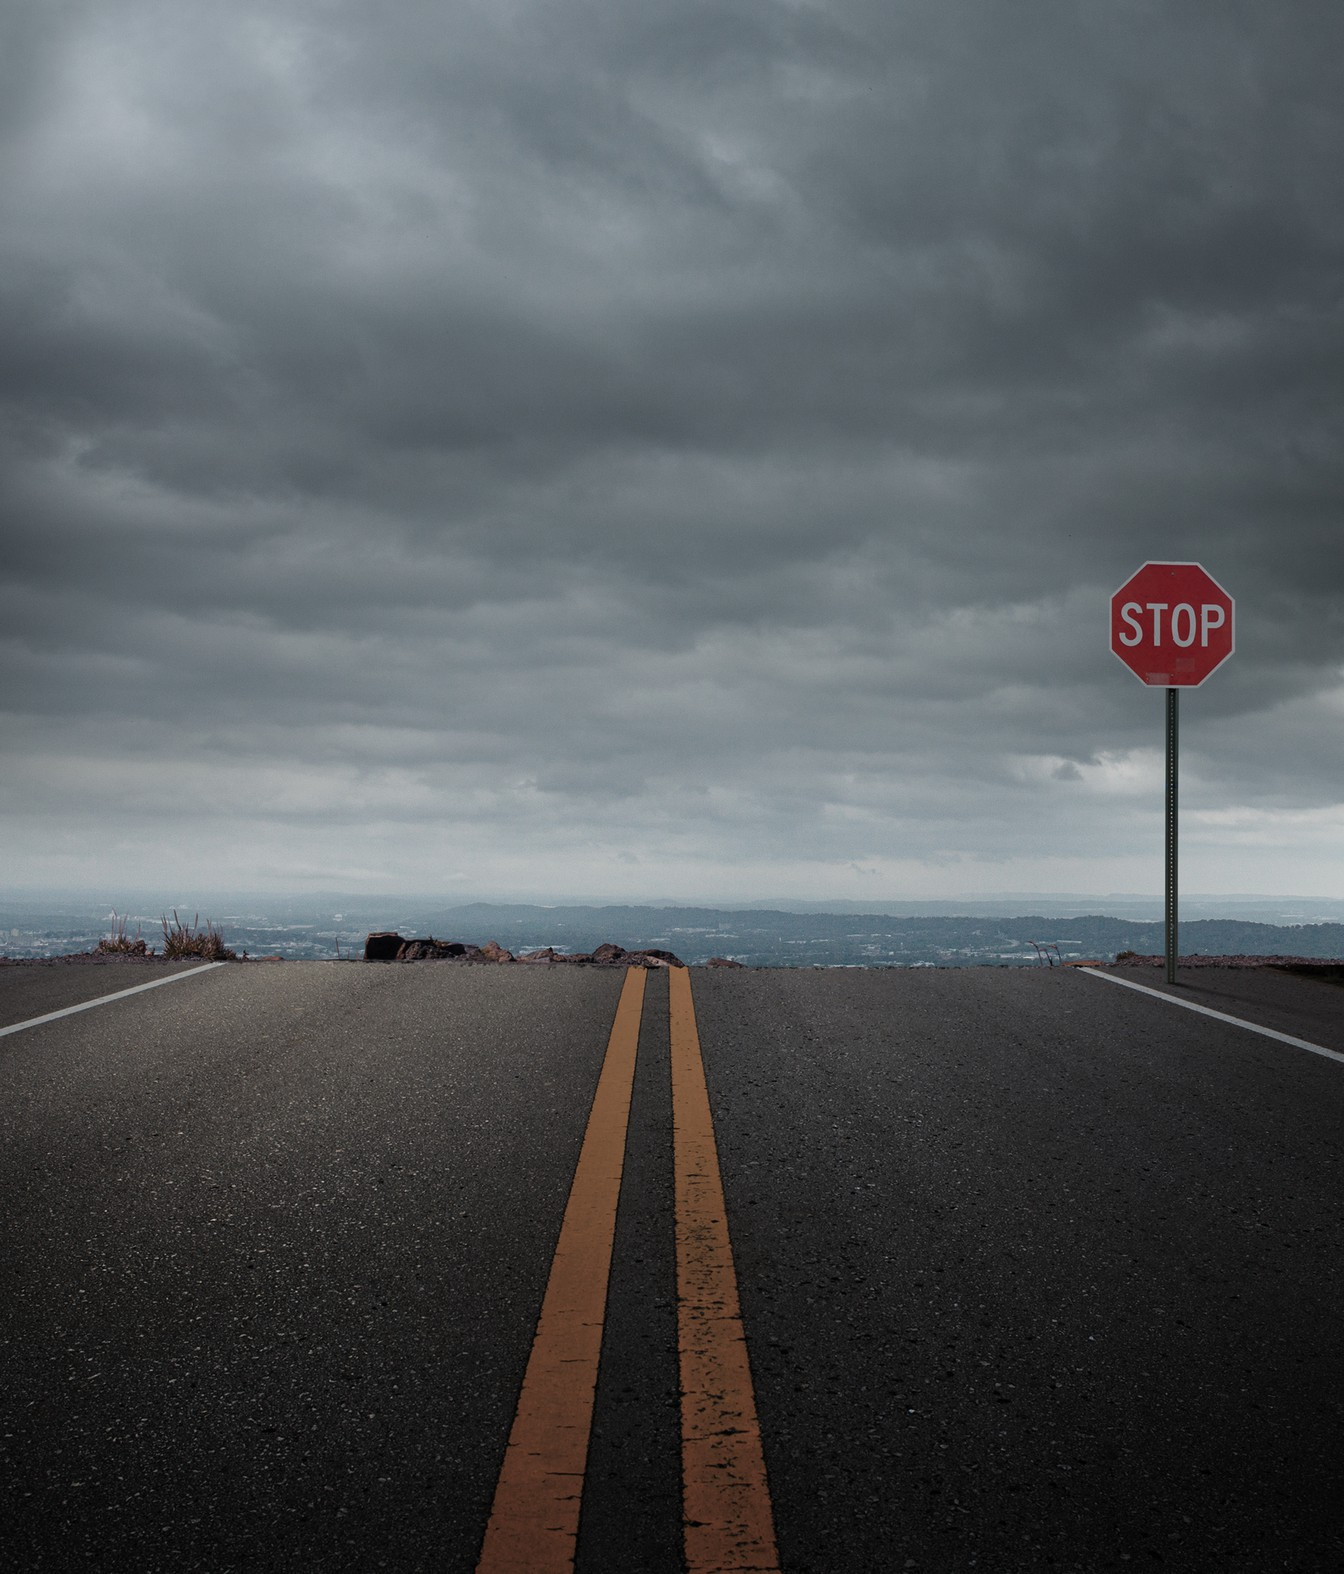 A road that leads off a cliff. A stop sign is right at the edge of the cliff, and the sky is gray and cloudy.